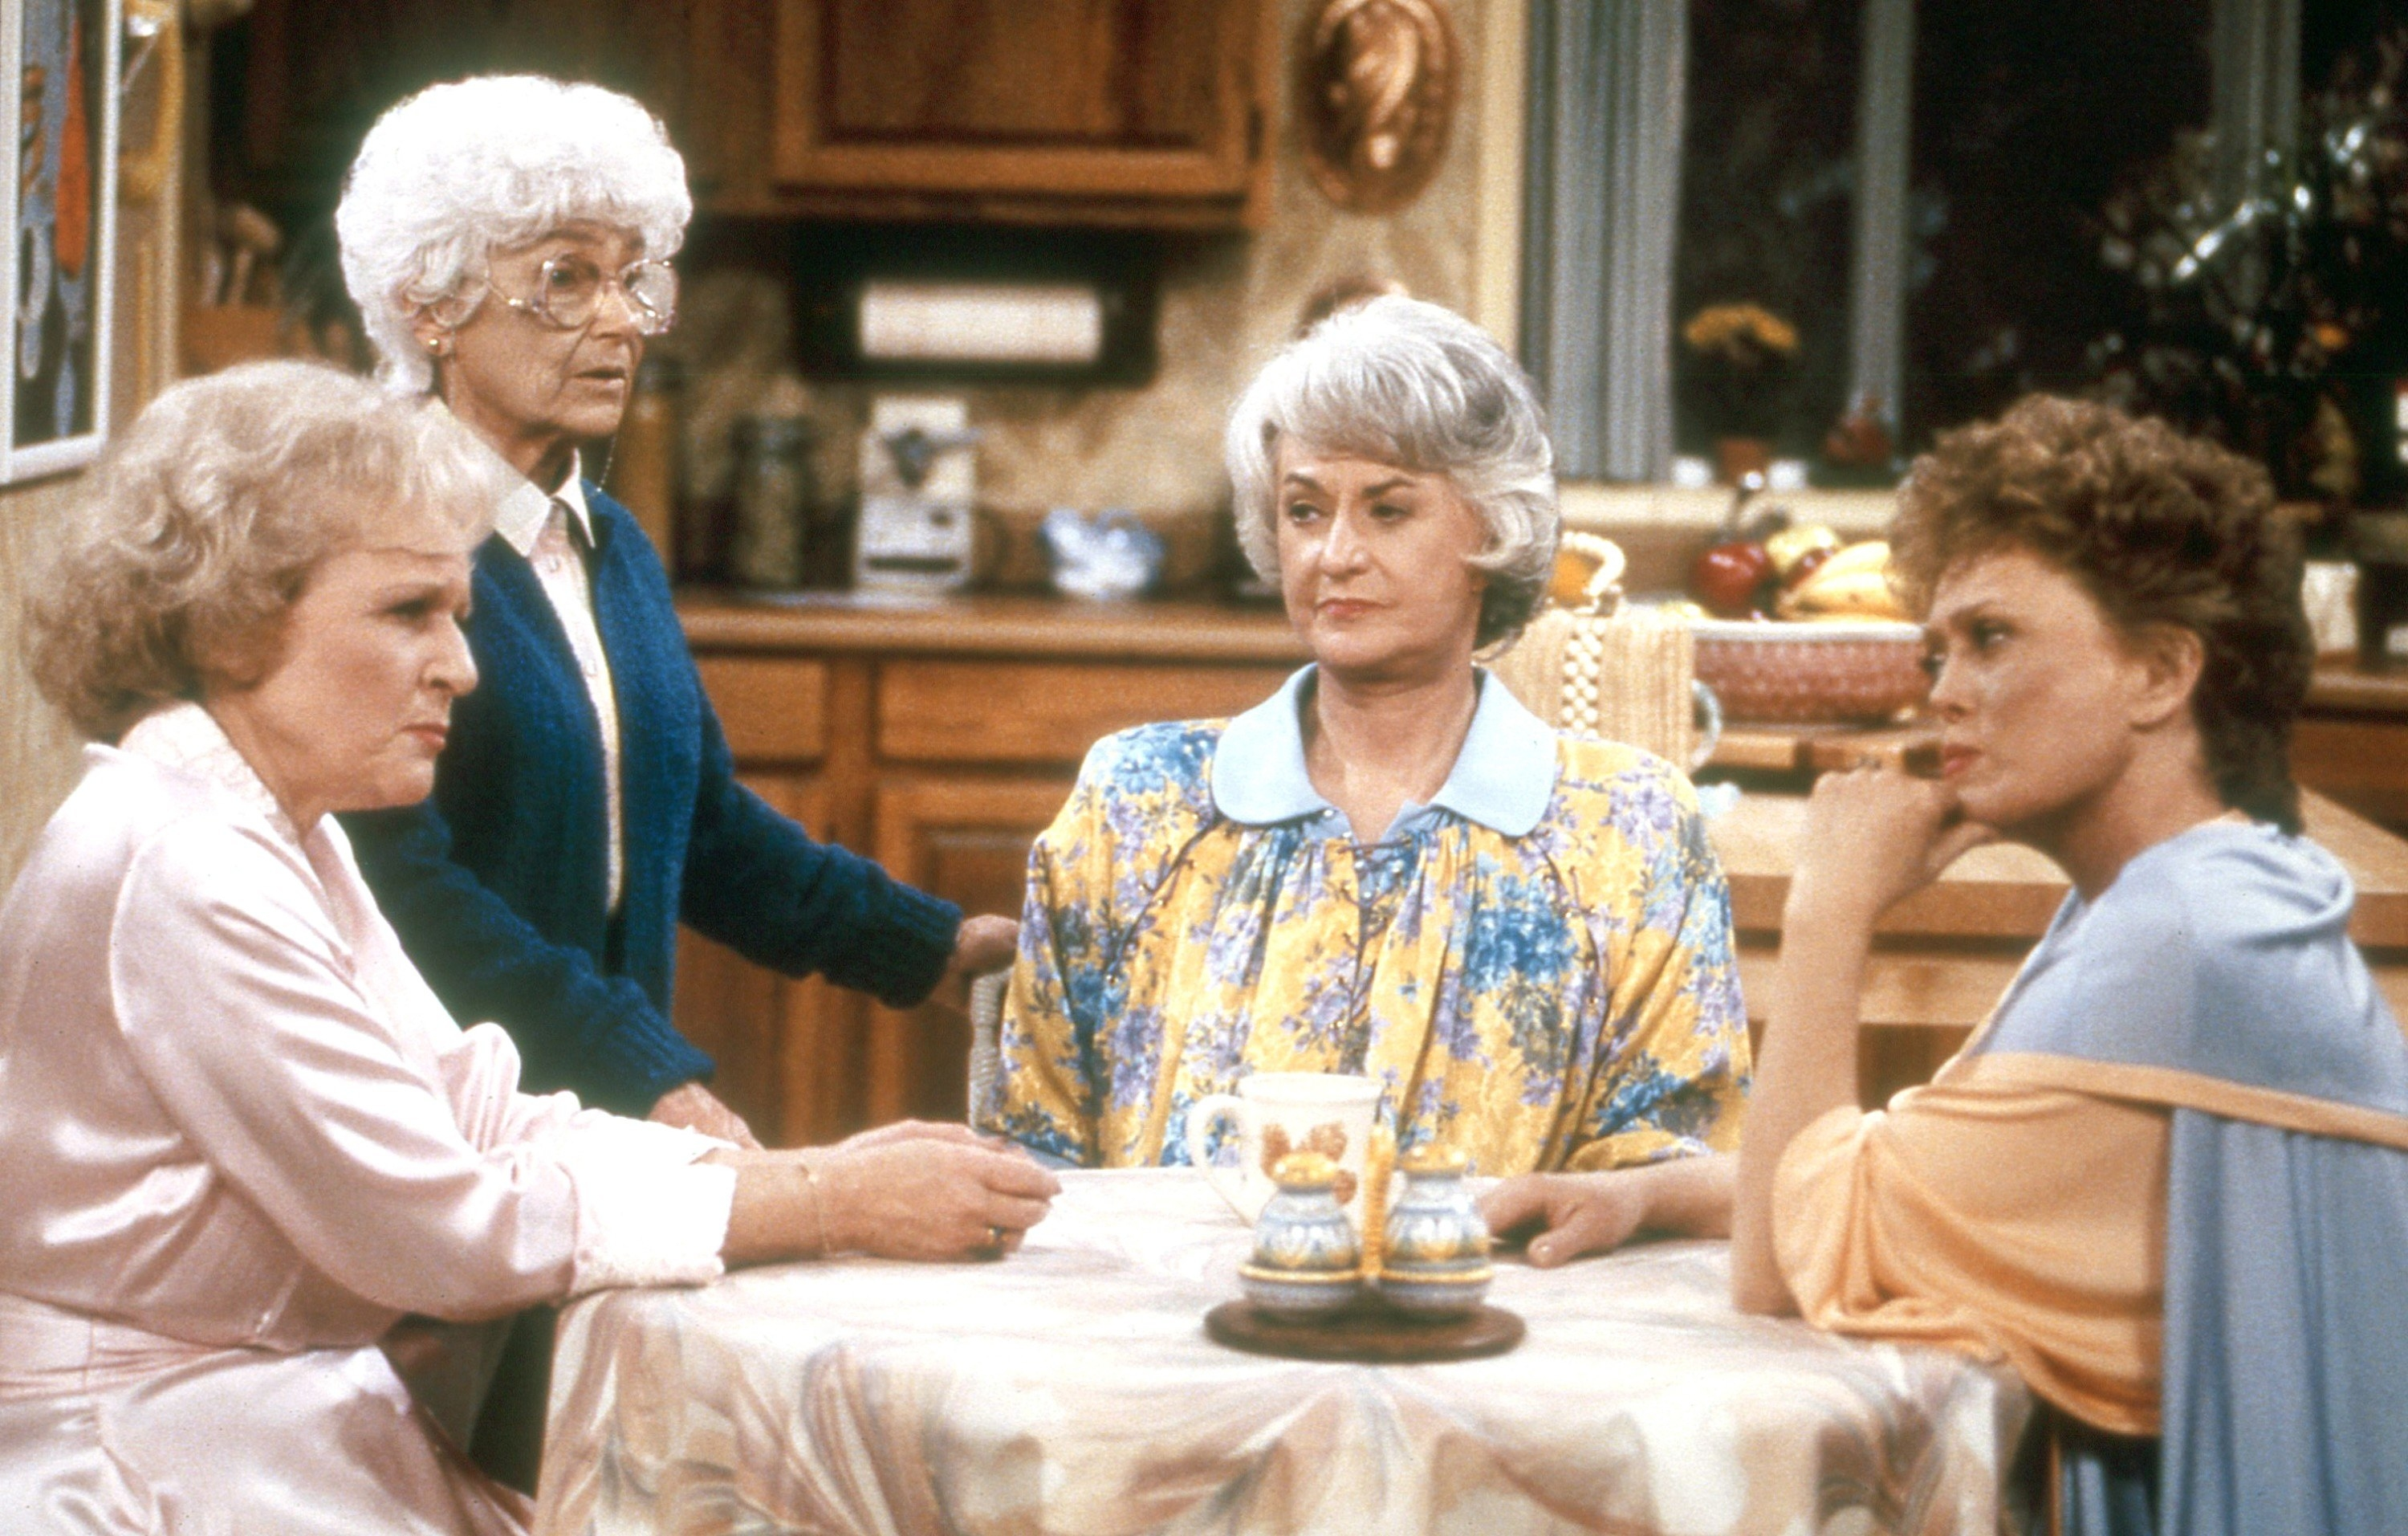 Betty White, Estelle Getty, Bea Arthur, and Rue McClanahan around a table in the kitchen